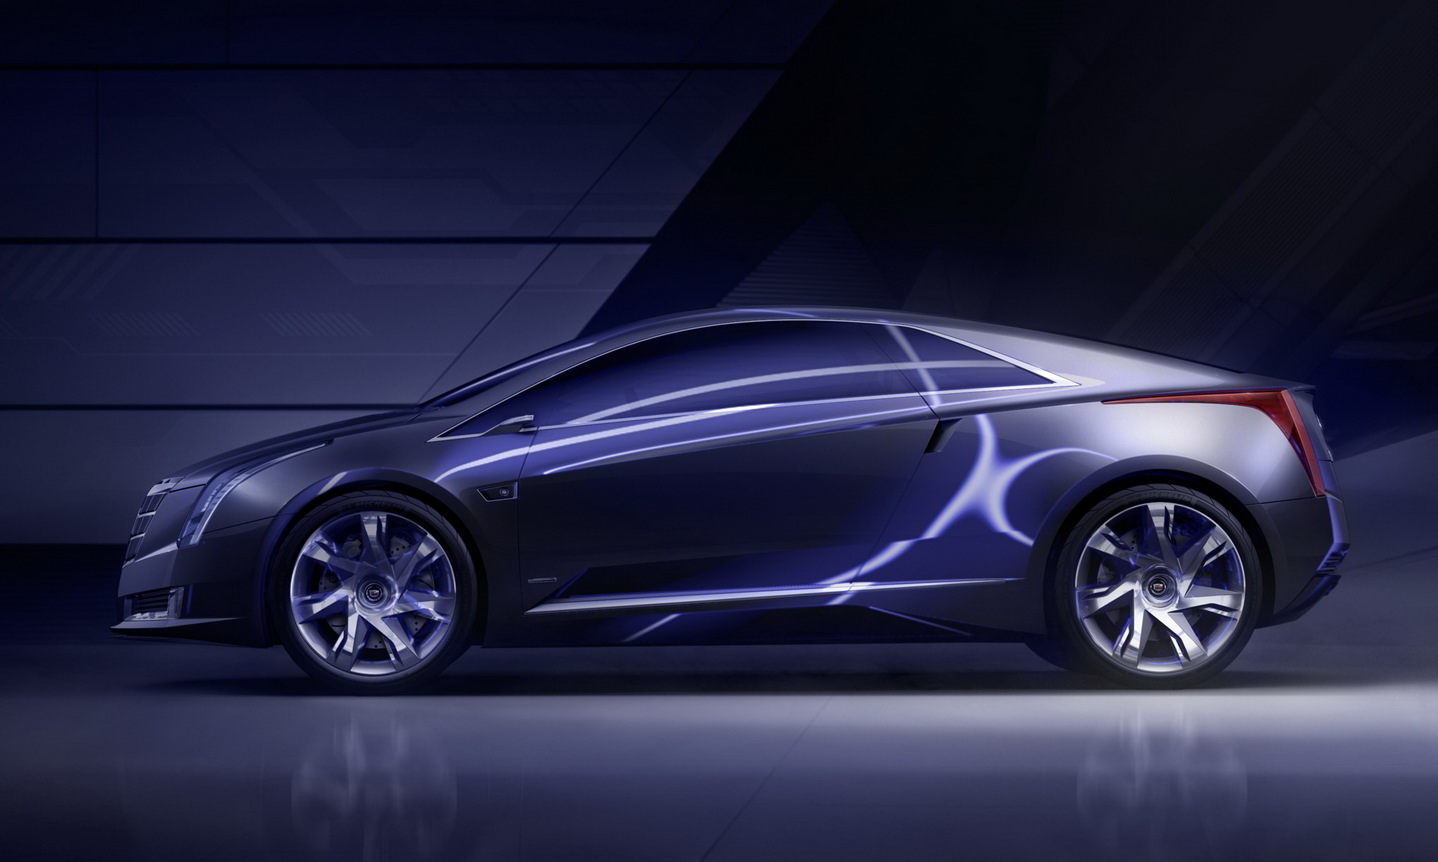 chevy volt essay How long does it take to charge a to recharge a completely empty car battery from an ordinary 120-volt socket, the chevy volt plug-in hybrid would need 10.